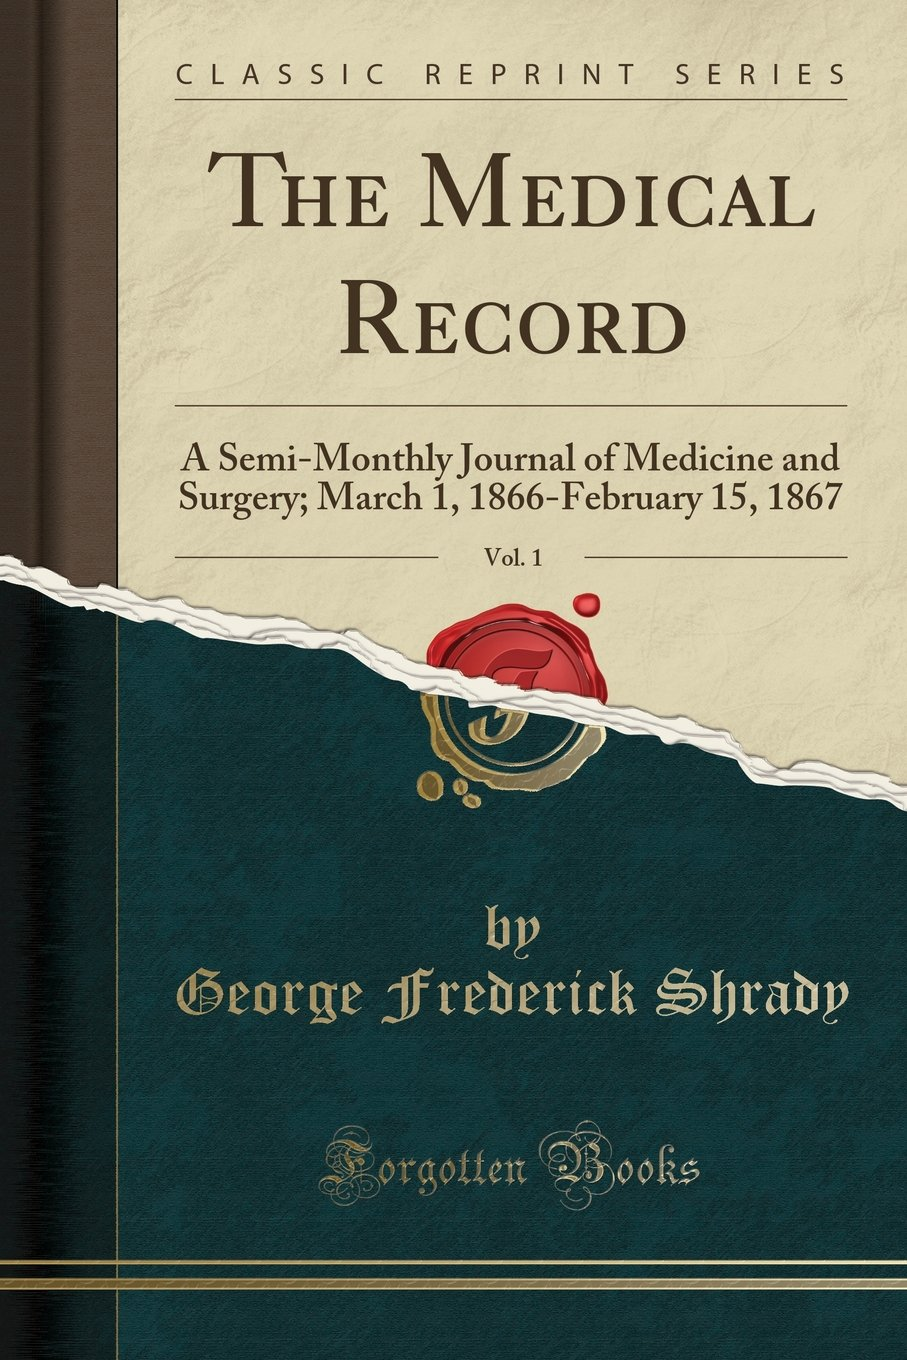 The Medical Record, Vol. 1: A Semi-Monthly Journal of Medicine and Surgery; March 1, 1866-February 15, 1867 (Classic Reprint) pdf epub